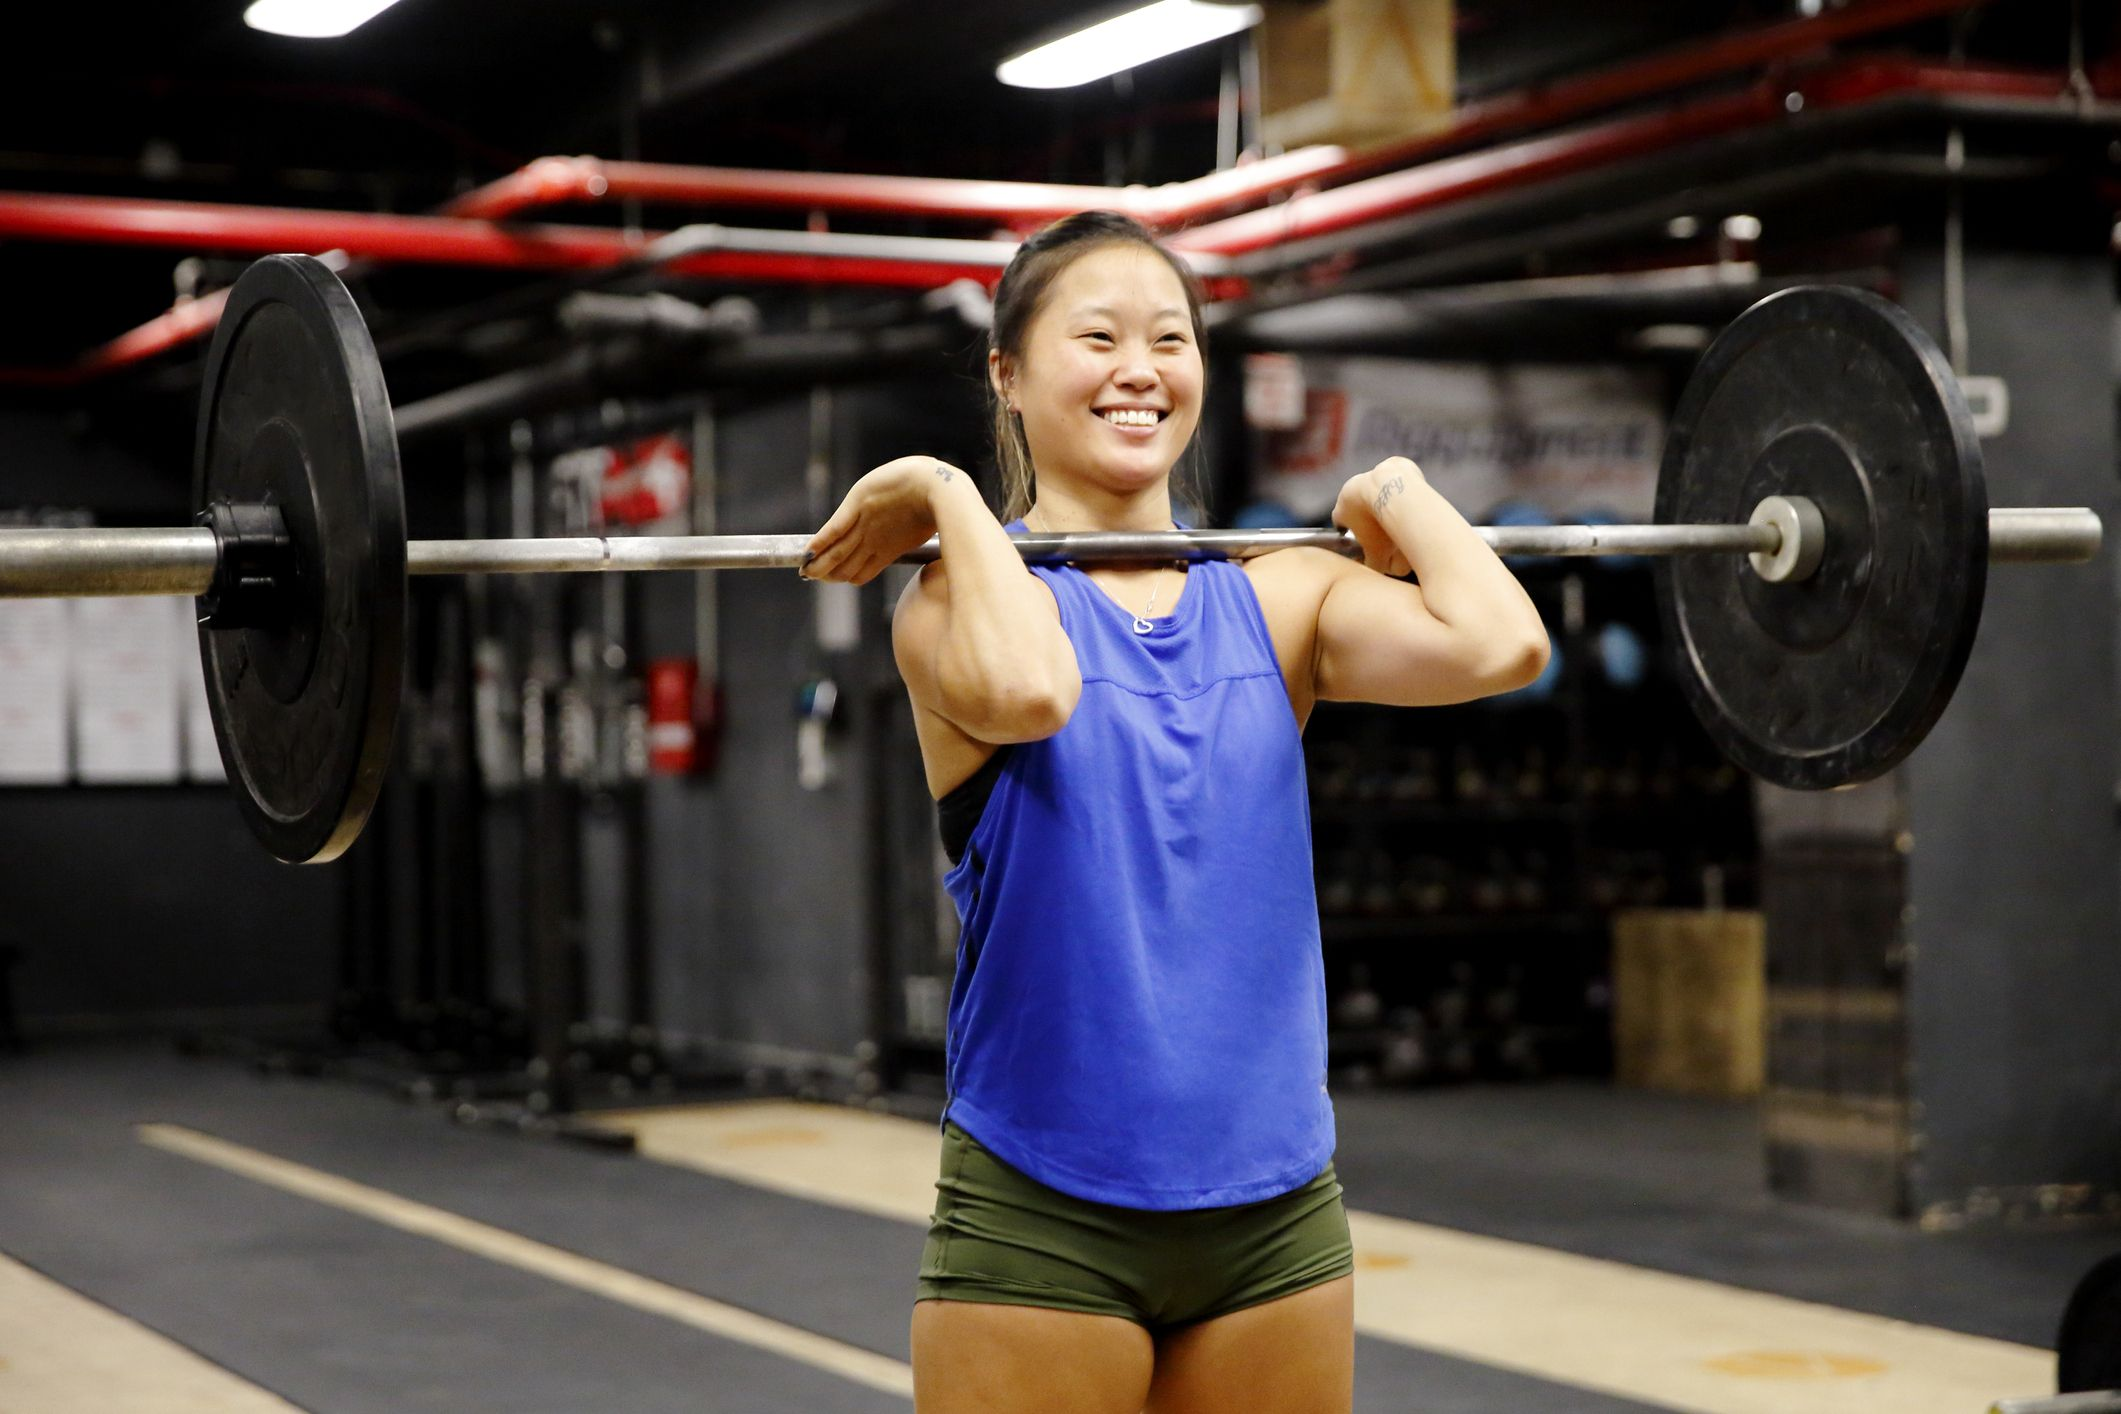 Get Confident in the Gym with this Beginner's Barbell Workout Routine